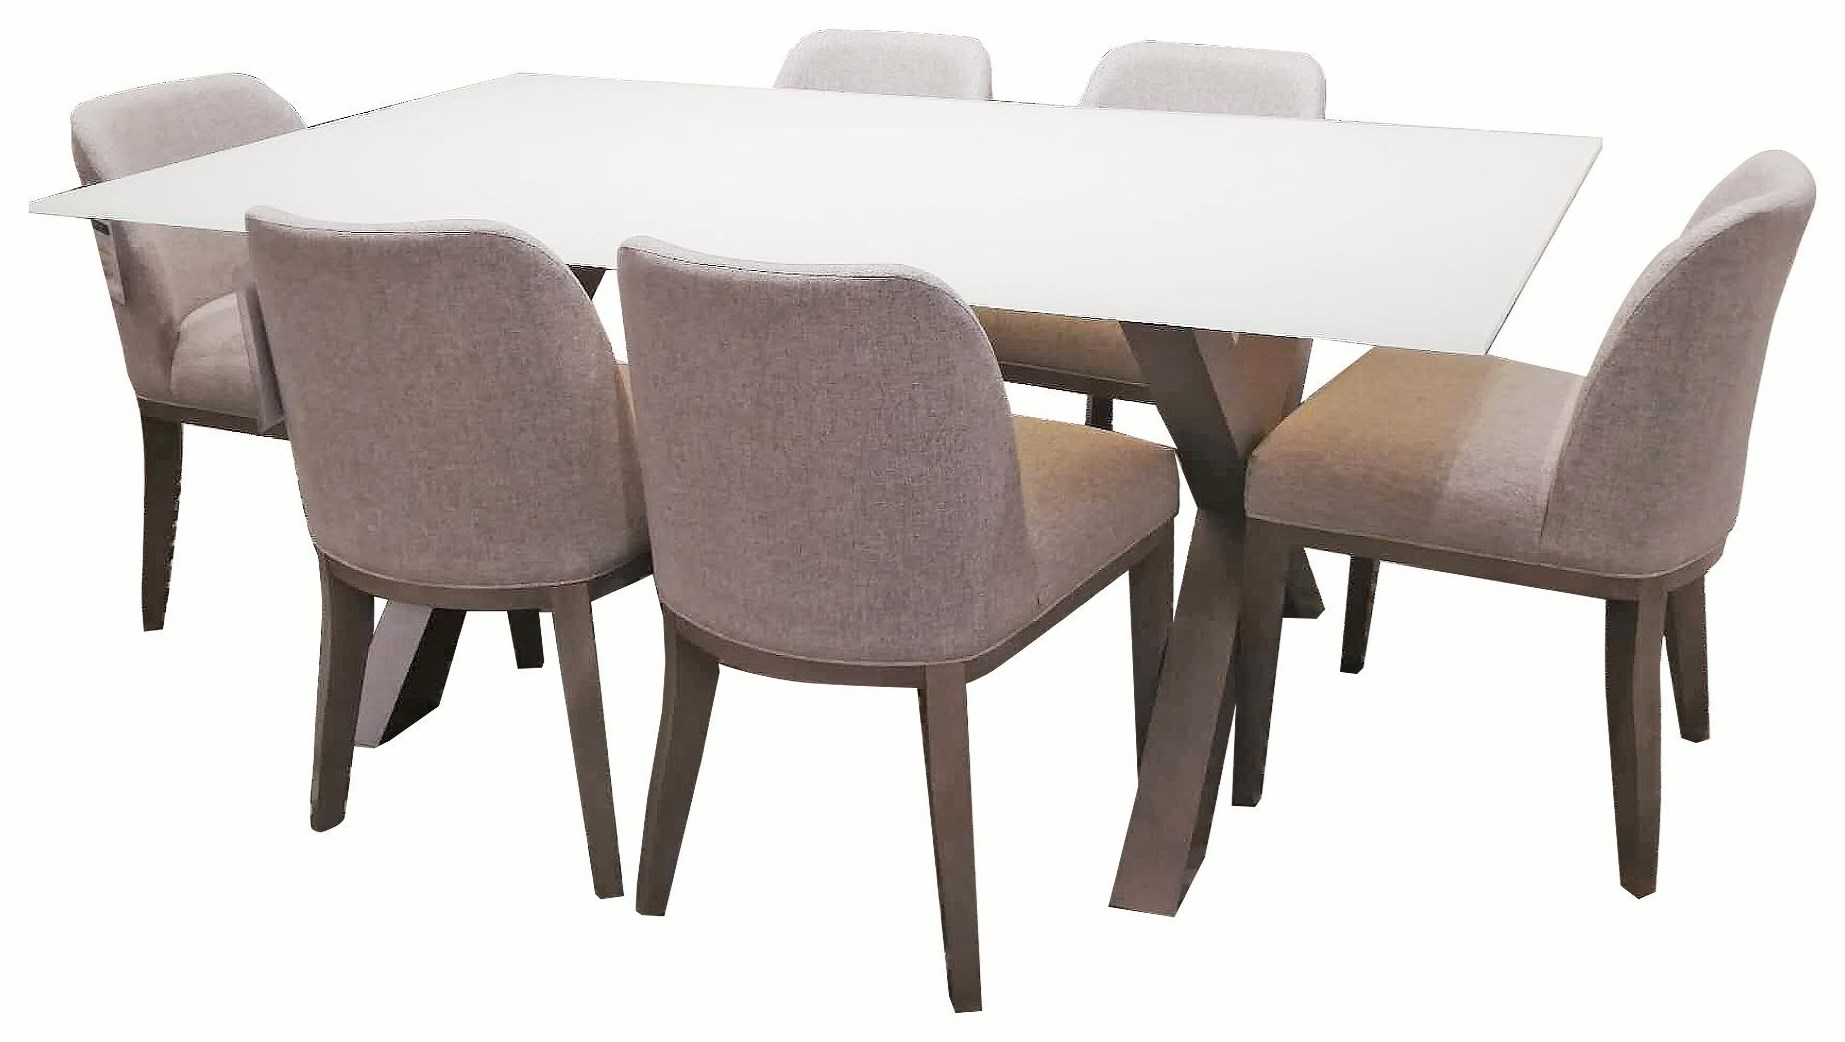 TDGL 7Pc. Dining set by Dinec at Upper Room Home Furnishings